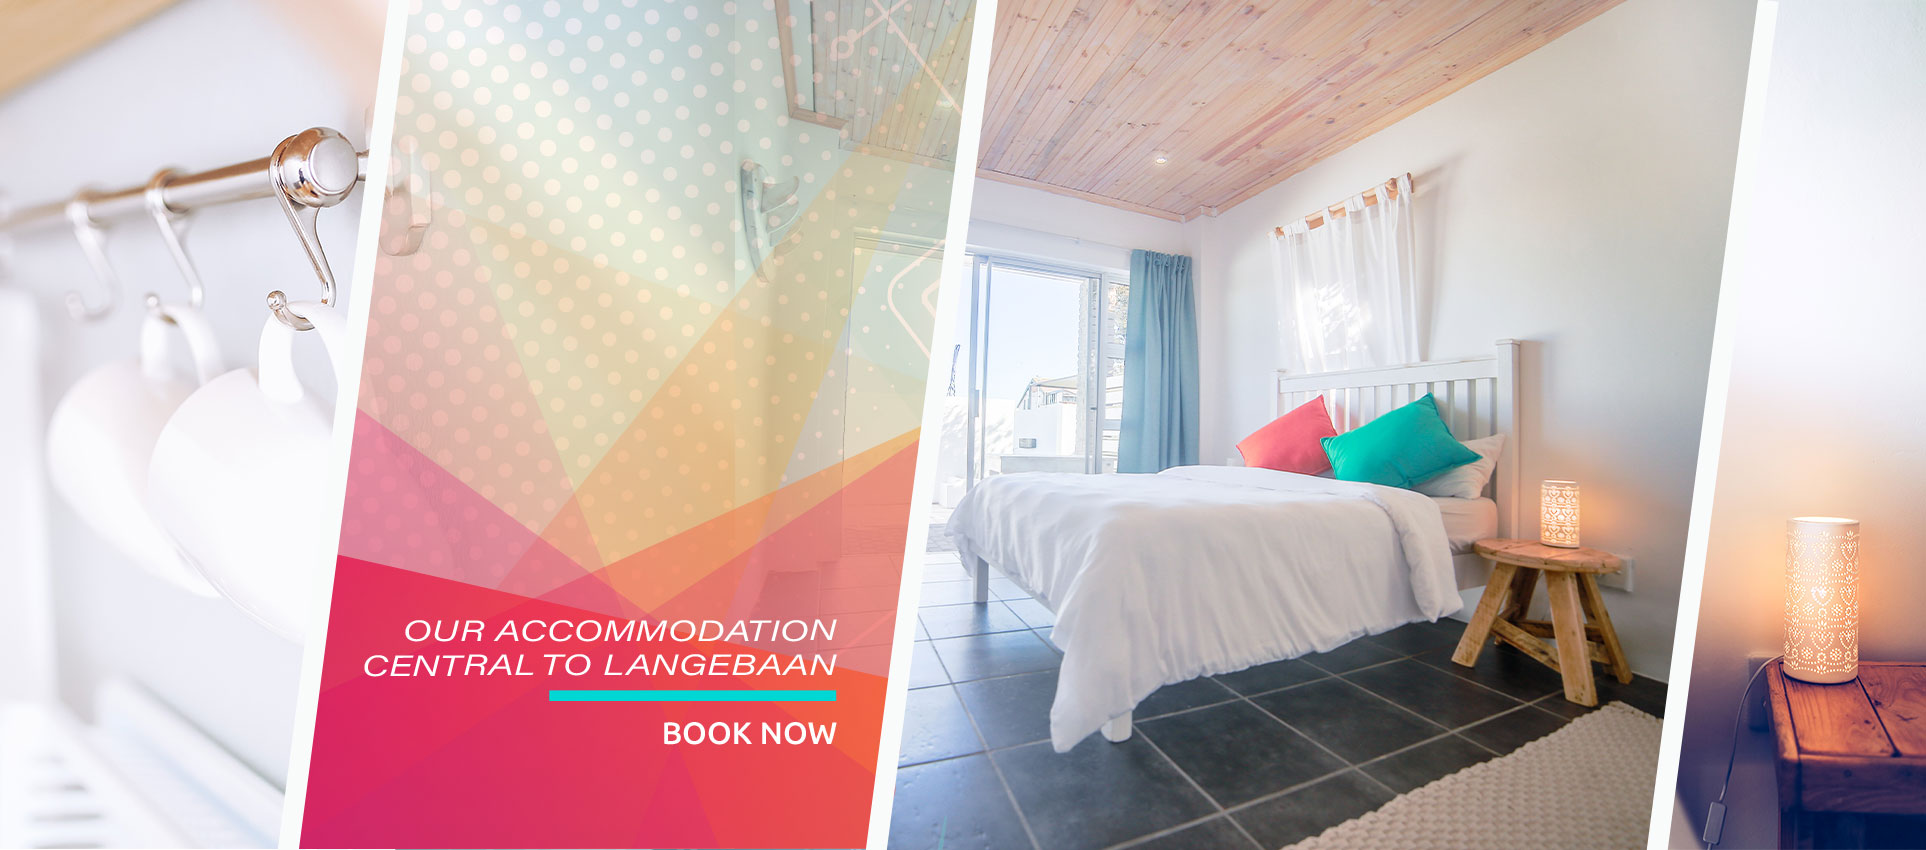 accommodation-langebaan-south-africa-kitesurfing-accommodation